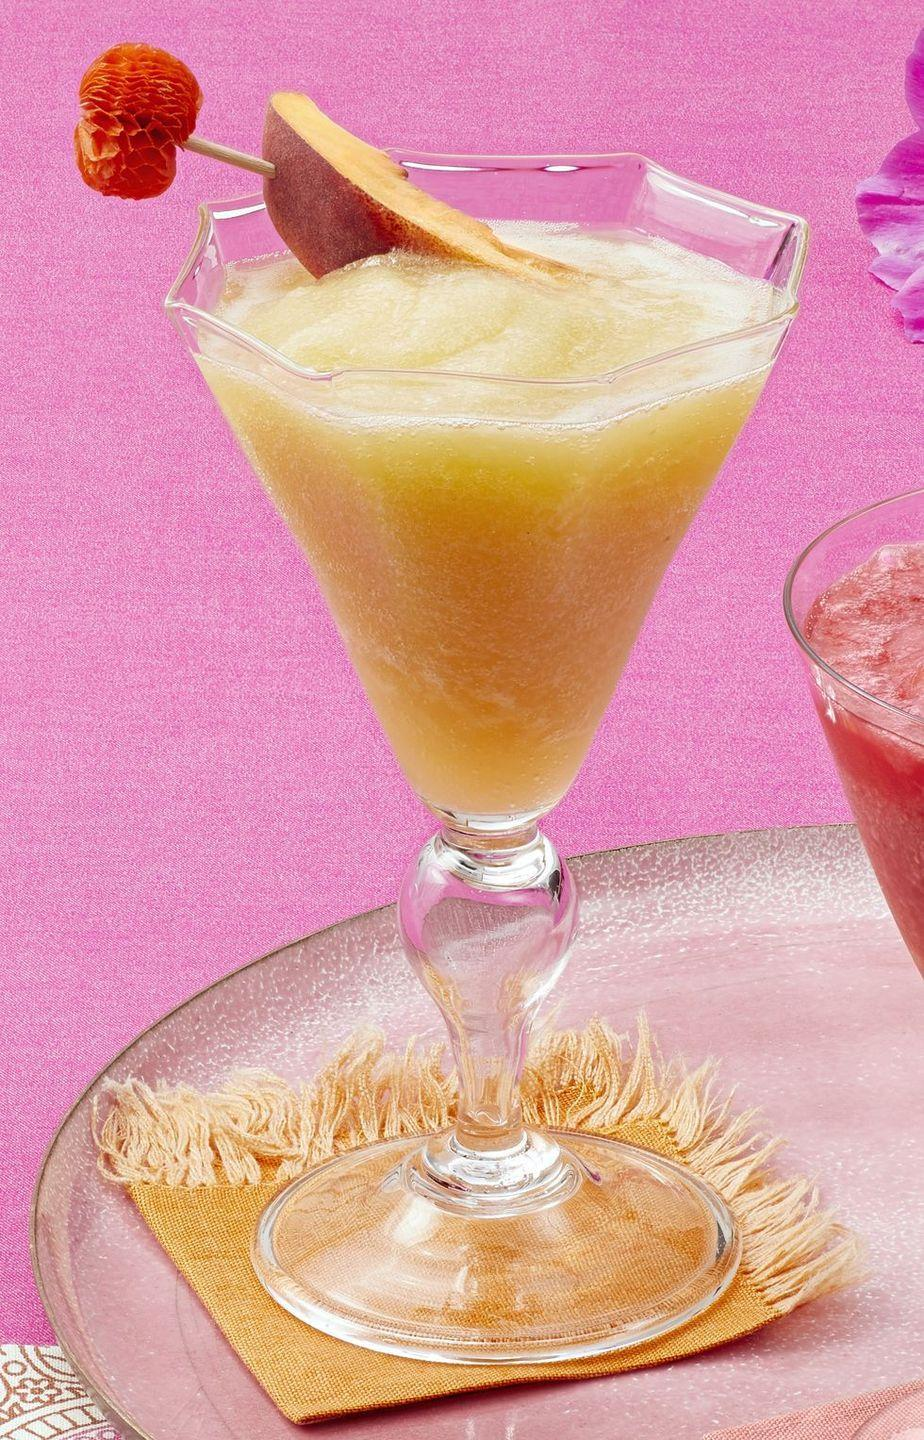 """<p>This frozen cocktail is like summer in a glass. It combines peaches, pineapple, and green grapes with orange-flavored vodka and white wine for a sweet and boozy drink.</p><p><a href=""""https://www.thepioneerwoman.com/food-cooking/recipes/a35995877/pineapple-peach-frozen-sangria-recipe/"""" rel=""""nofollow noopener"""" target=""""_blank"""" data-ylk=""""slk:Get Ree's recipe."""" class=""""link rapid-noclick-resp""""><strong>Get Ree's recipe. </strong></a></p><p><a class=""""link rapid-noclick-resp"""" href=""""https://go.redirectingat.com?id=74968X1596630&url=https%3A%2F%2Fwww.walmart.com%2Fsearch%2F%3Fquery%3Dblender&sref=https%3A%2F%2Fwww.thepioneerwoman.com%2Ffood-cooking%2Fmeals-menus%2Fg36432840%2Ffourth-of-july-drinks%2F"""" rel=""""nofollow noopener"""" target=""""_blank"""" data-ylk=""""slk:SHOP BLENDERS"""">SHOP BLENDERS</a></p>"""